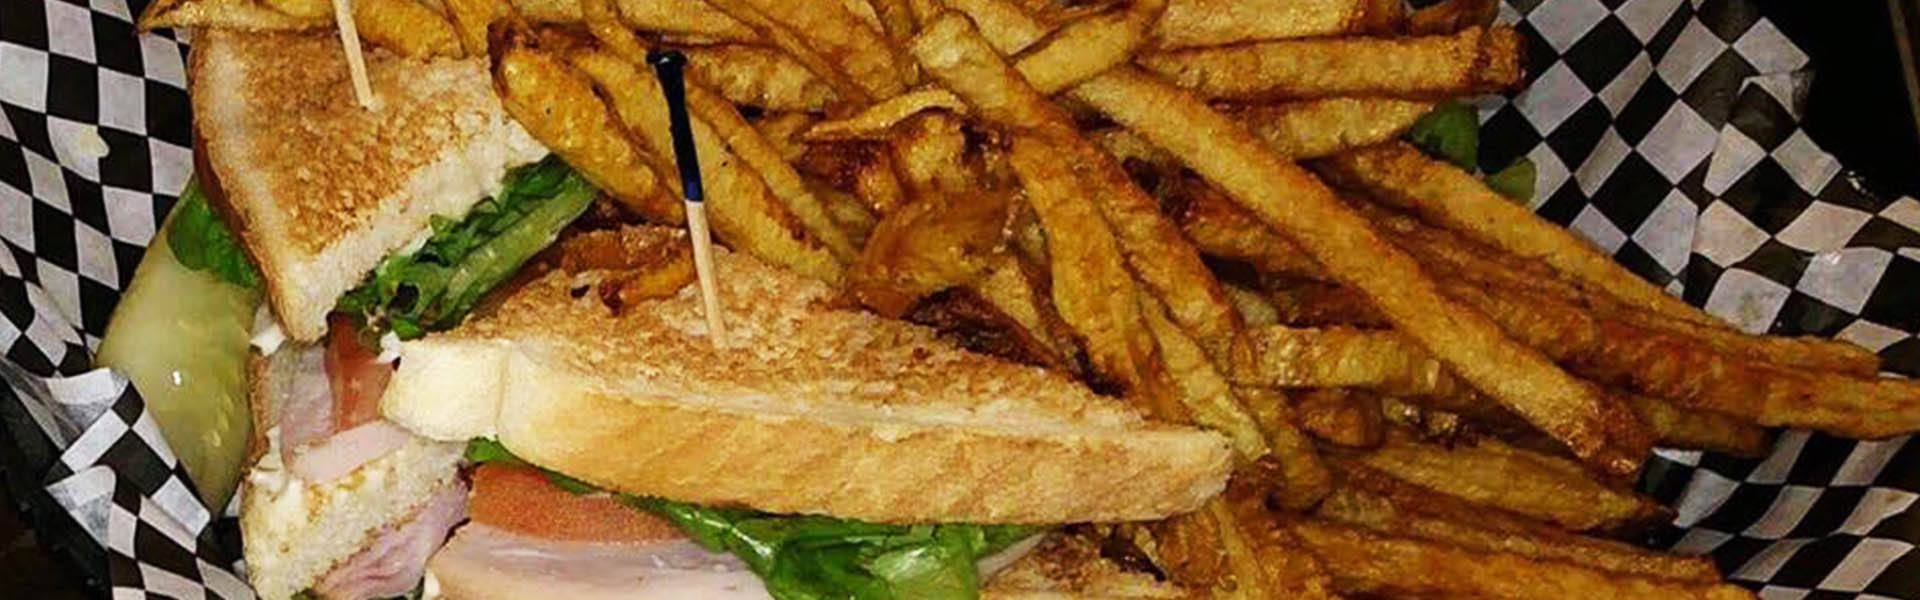 Sandwich and Fries in Basket